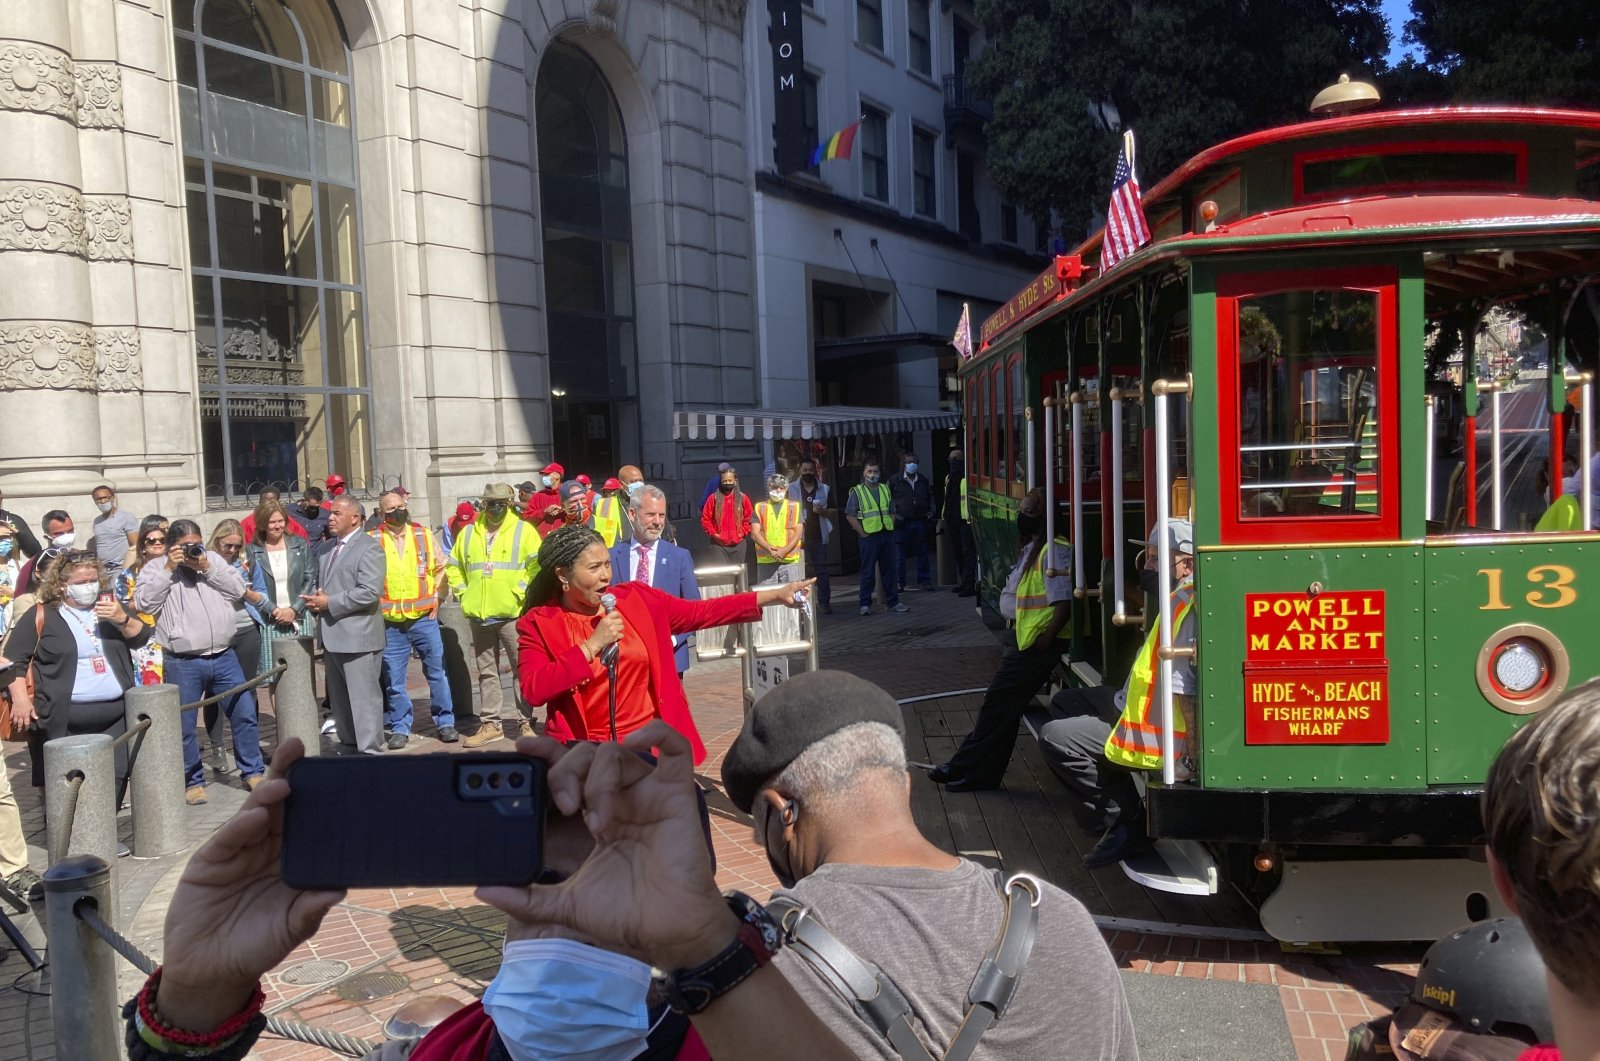 Mayor London Breed welcomes people to the city's cable car service's return during a ceremony at the Powell Street turnaround plaza in San Francisco, U.S., Monday, Aug. 2, 2021. (AP Photo)